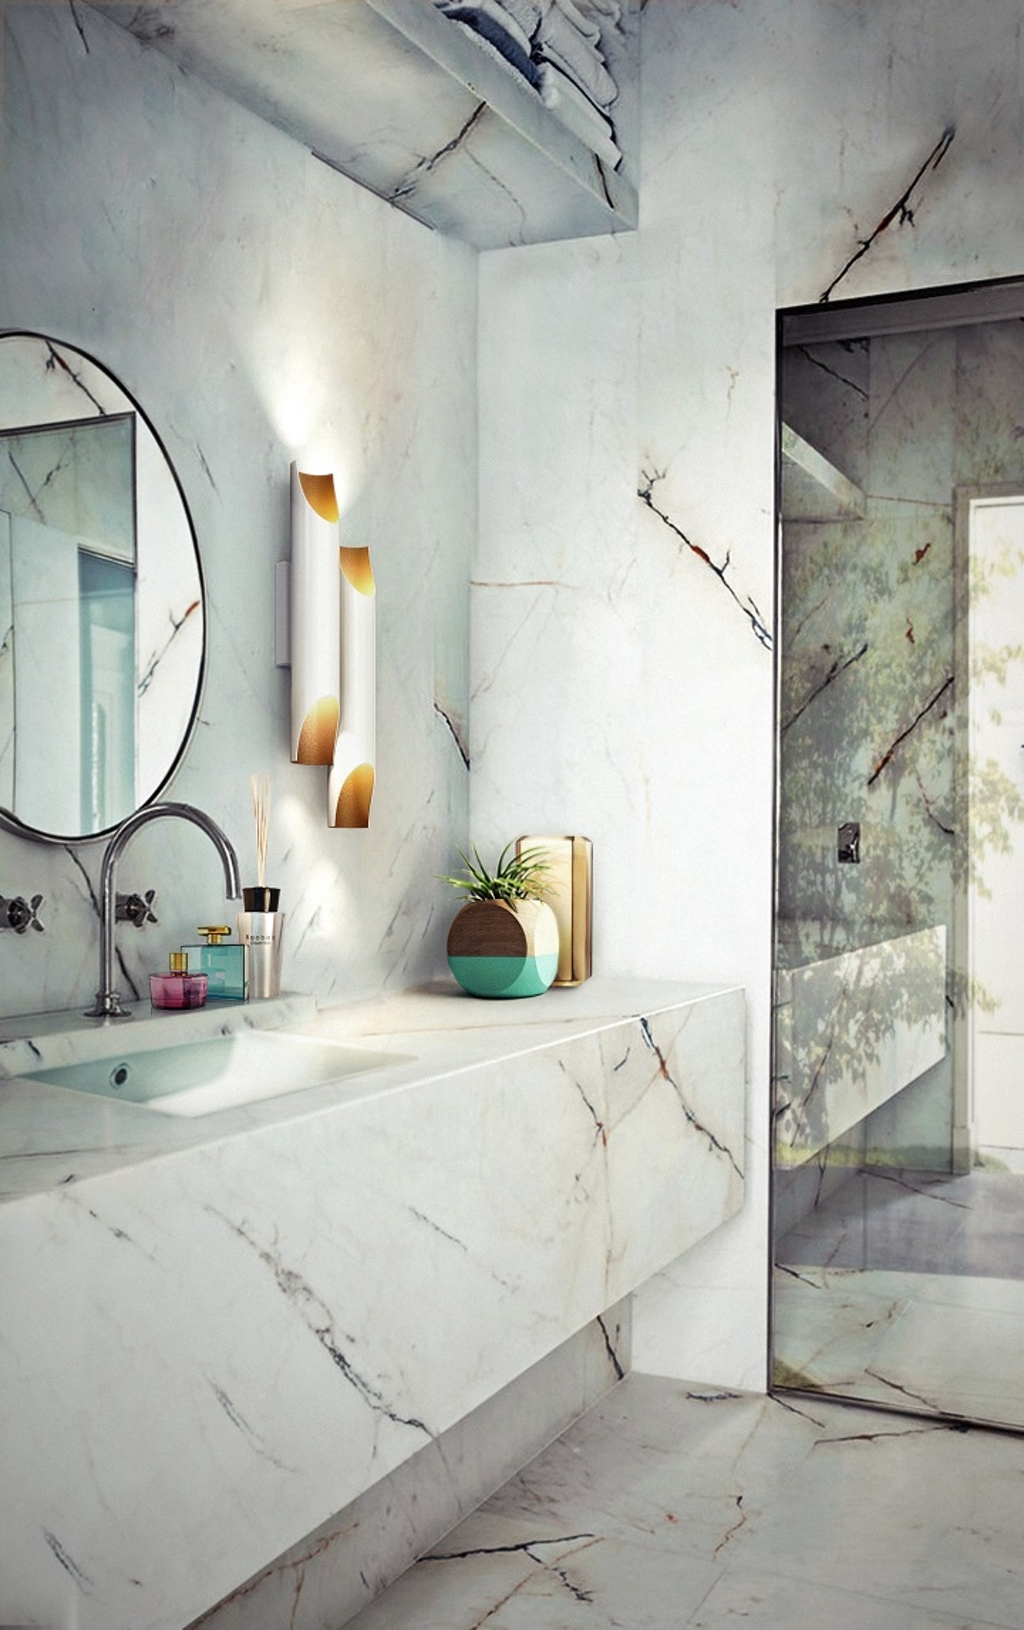 Feel Inspired By These Bathroom Tile Trends For 2019 17 Bathroom Tile Trends Feel Inspired By These Bathroom Tile Trends For 2019 Feel Inspired By These Bathroom Tile Trends For 2019 17